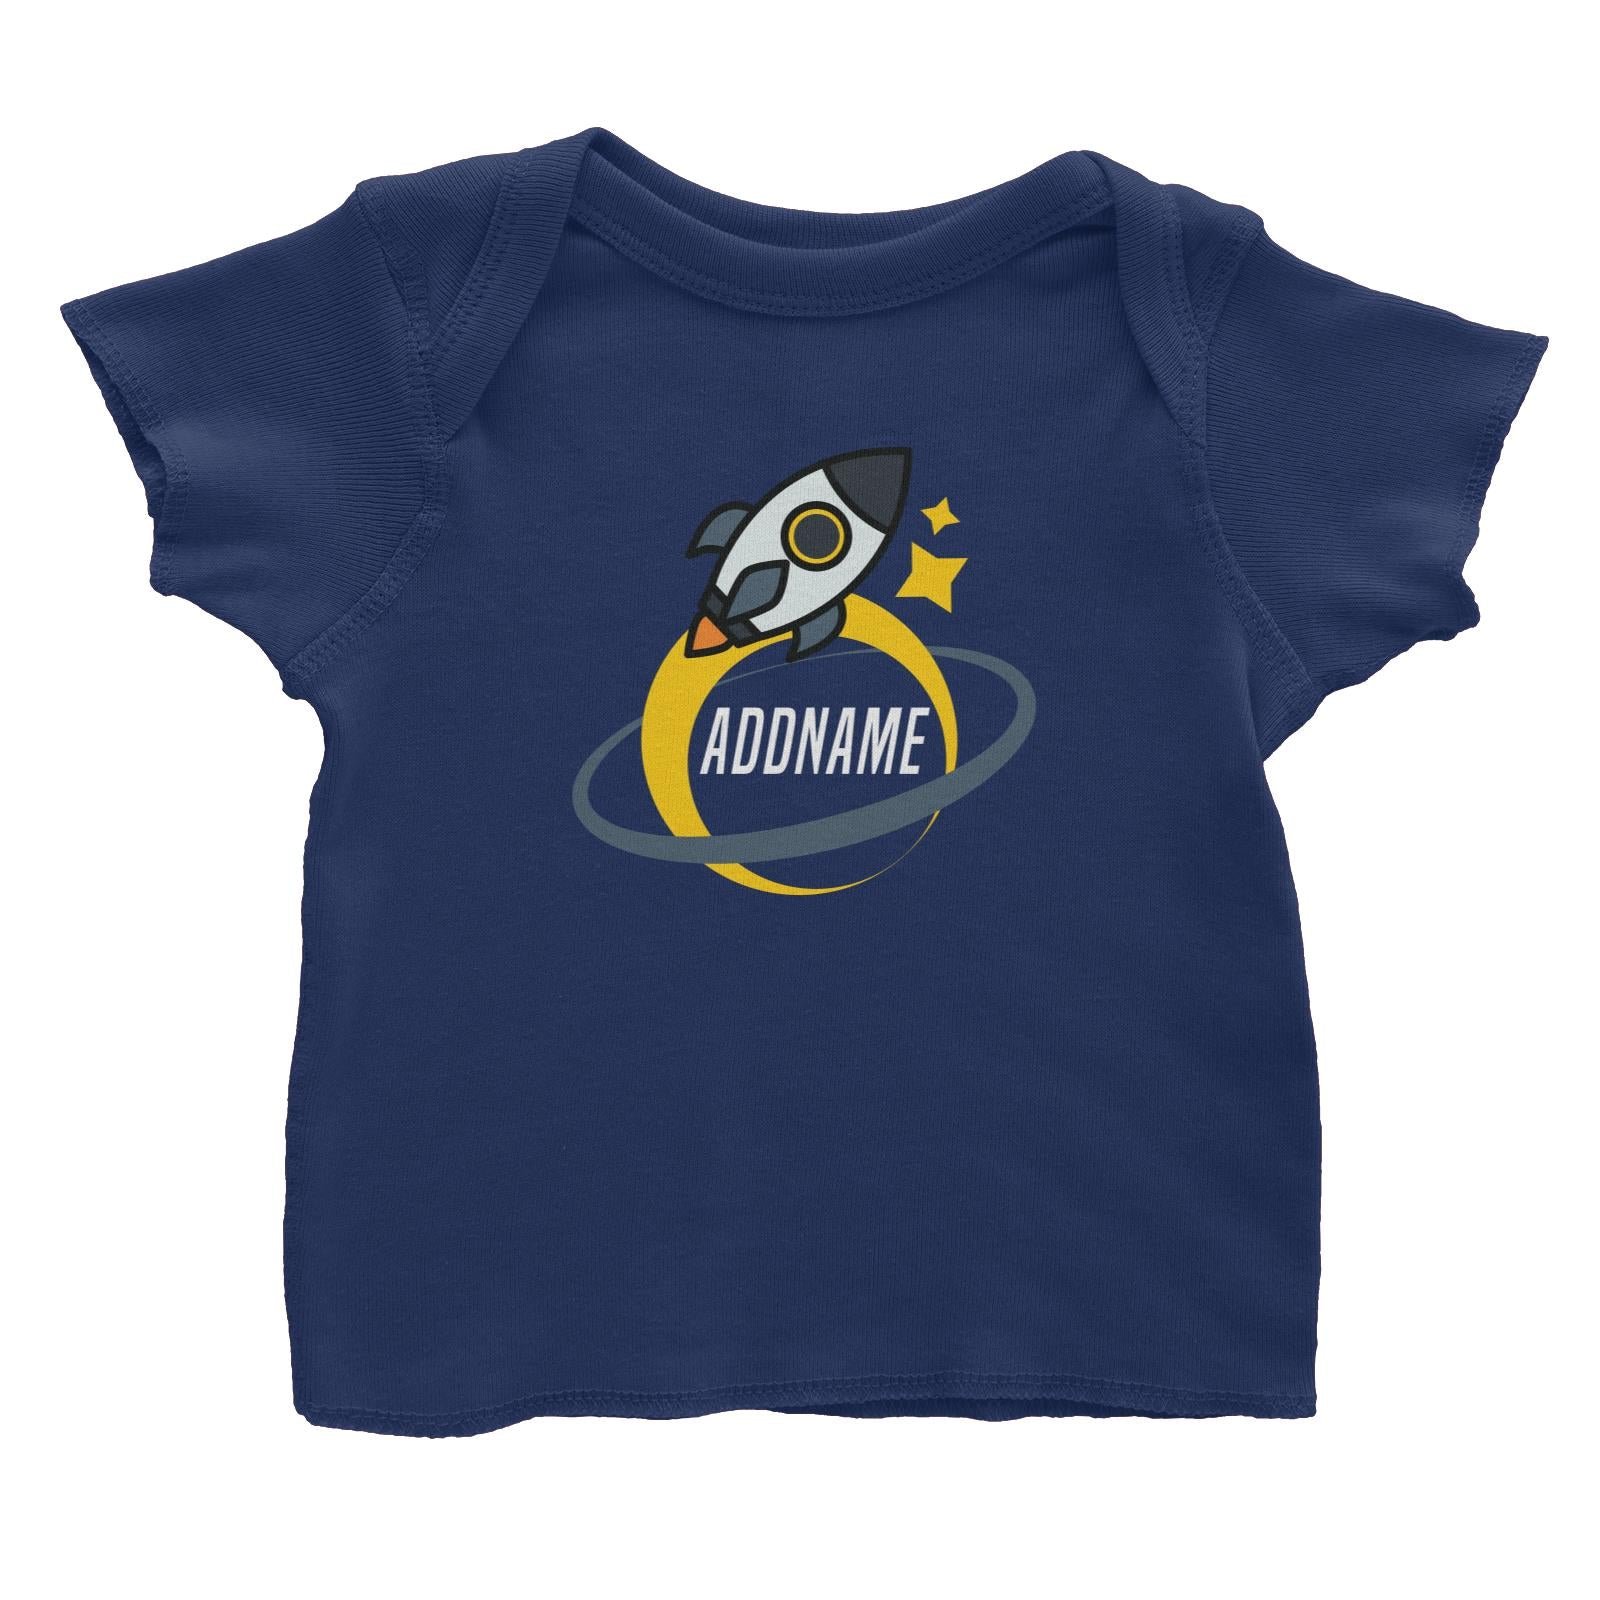 Birthday Rocket To Galaxy Moon And Star Addname Baby T-Shirt